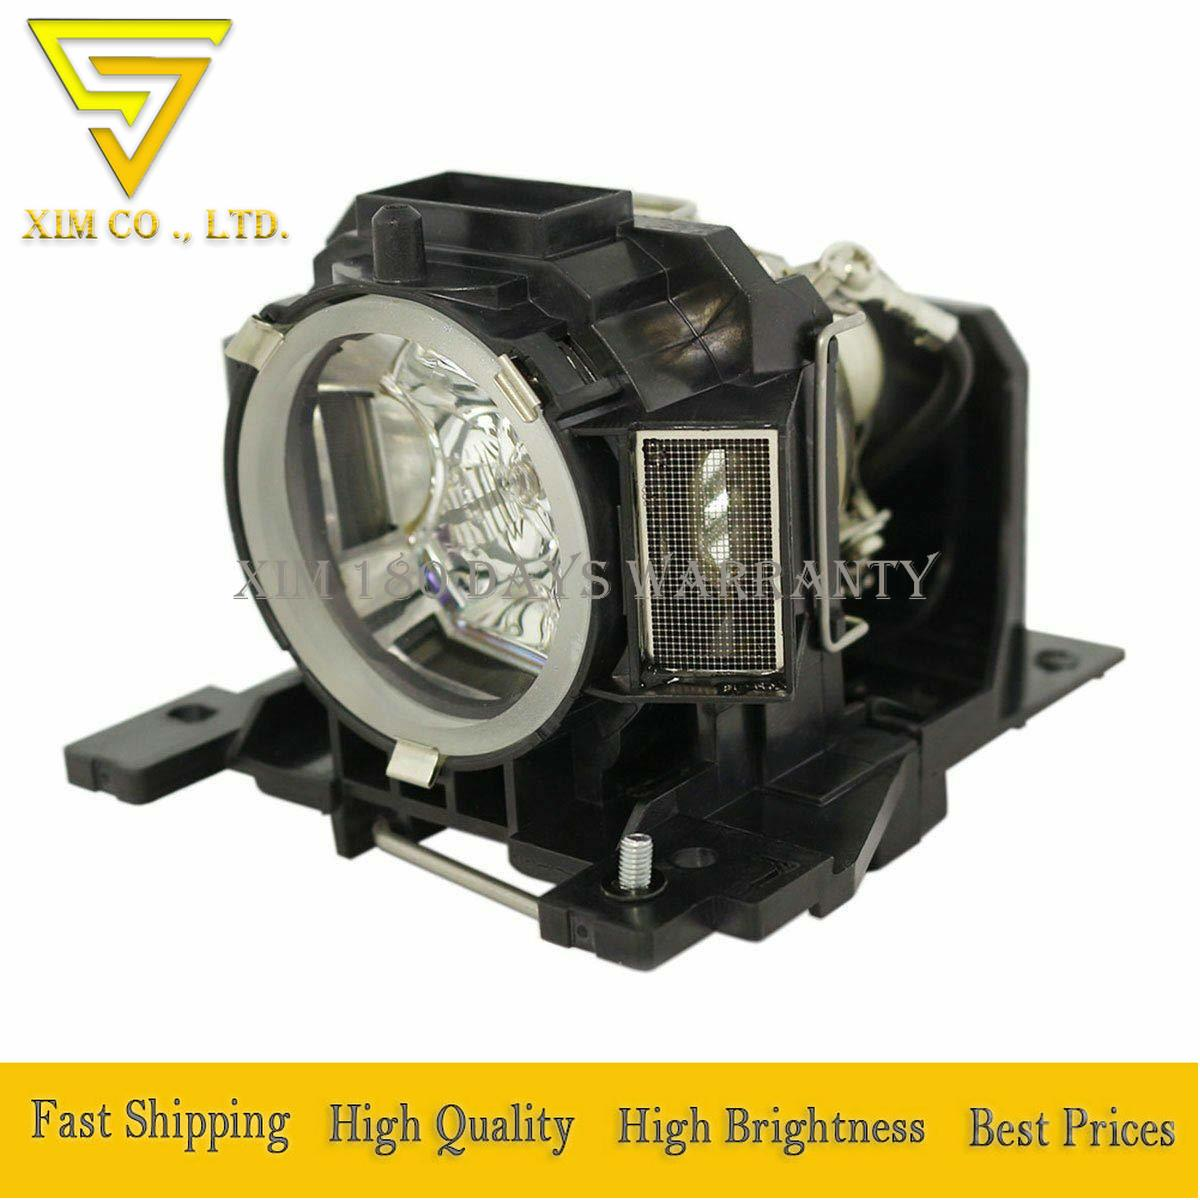 DT00891 CP-A100 ED-A100 ED-A110 CP-A101 A100J A101i /ED-A100 ED-A100J ED-A110J HCP-A8 for Hitachi Projector Lamp